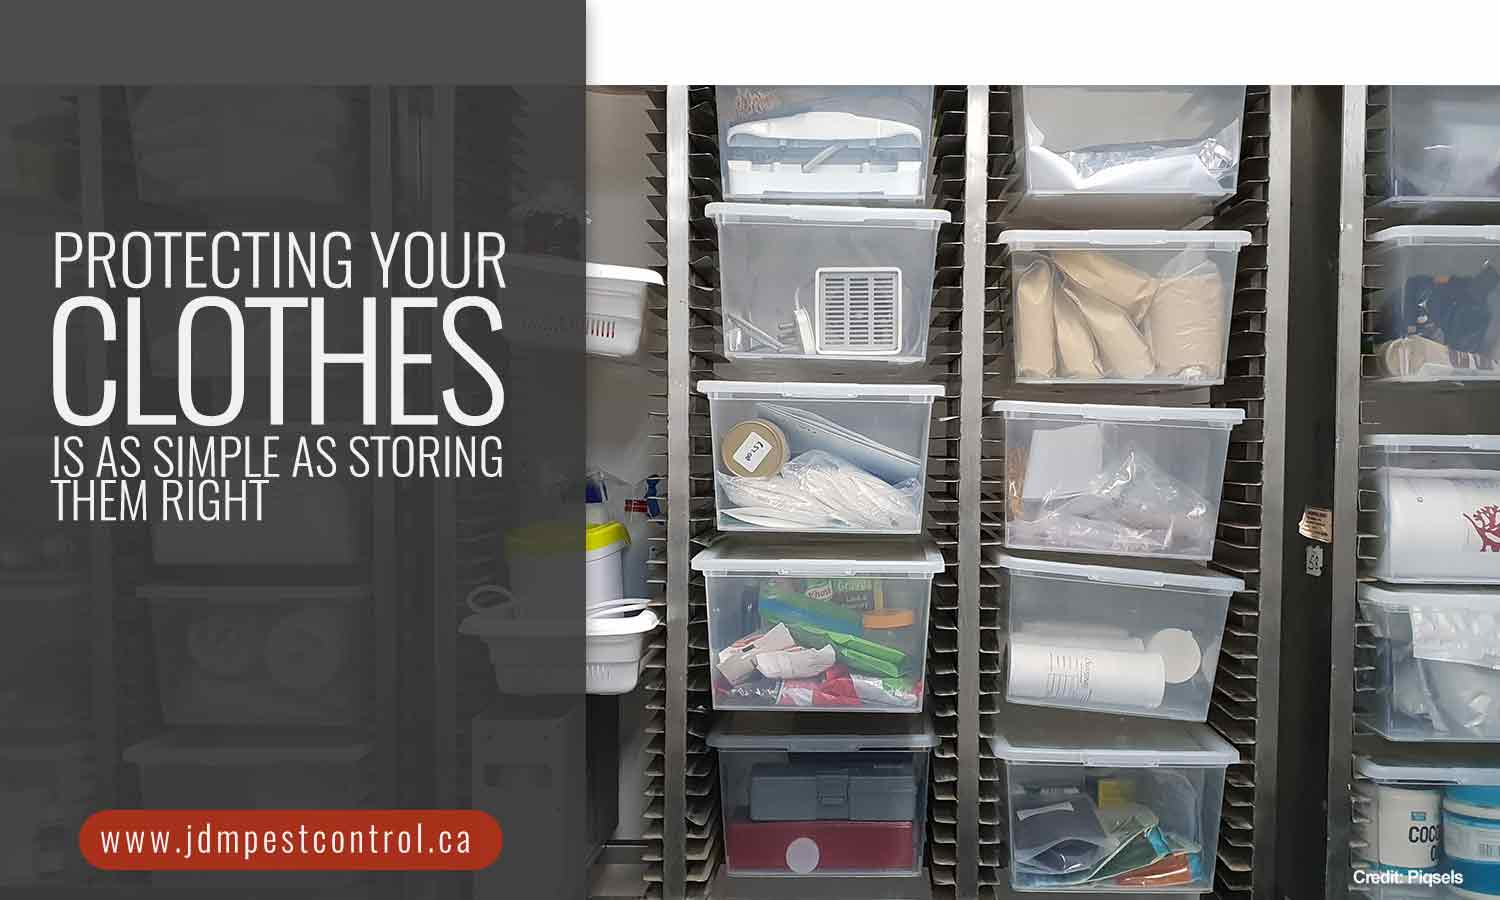 Protecting your clothes is as simple as storing them right